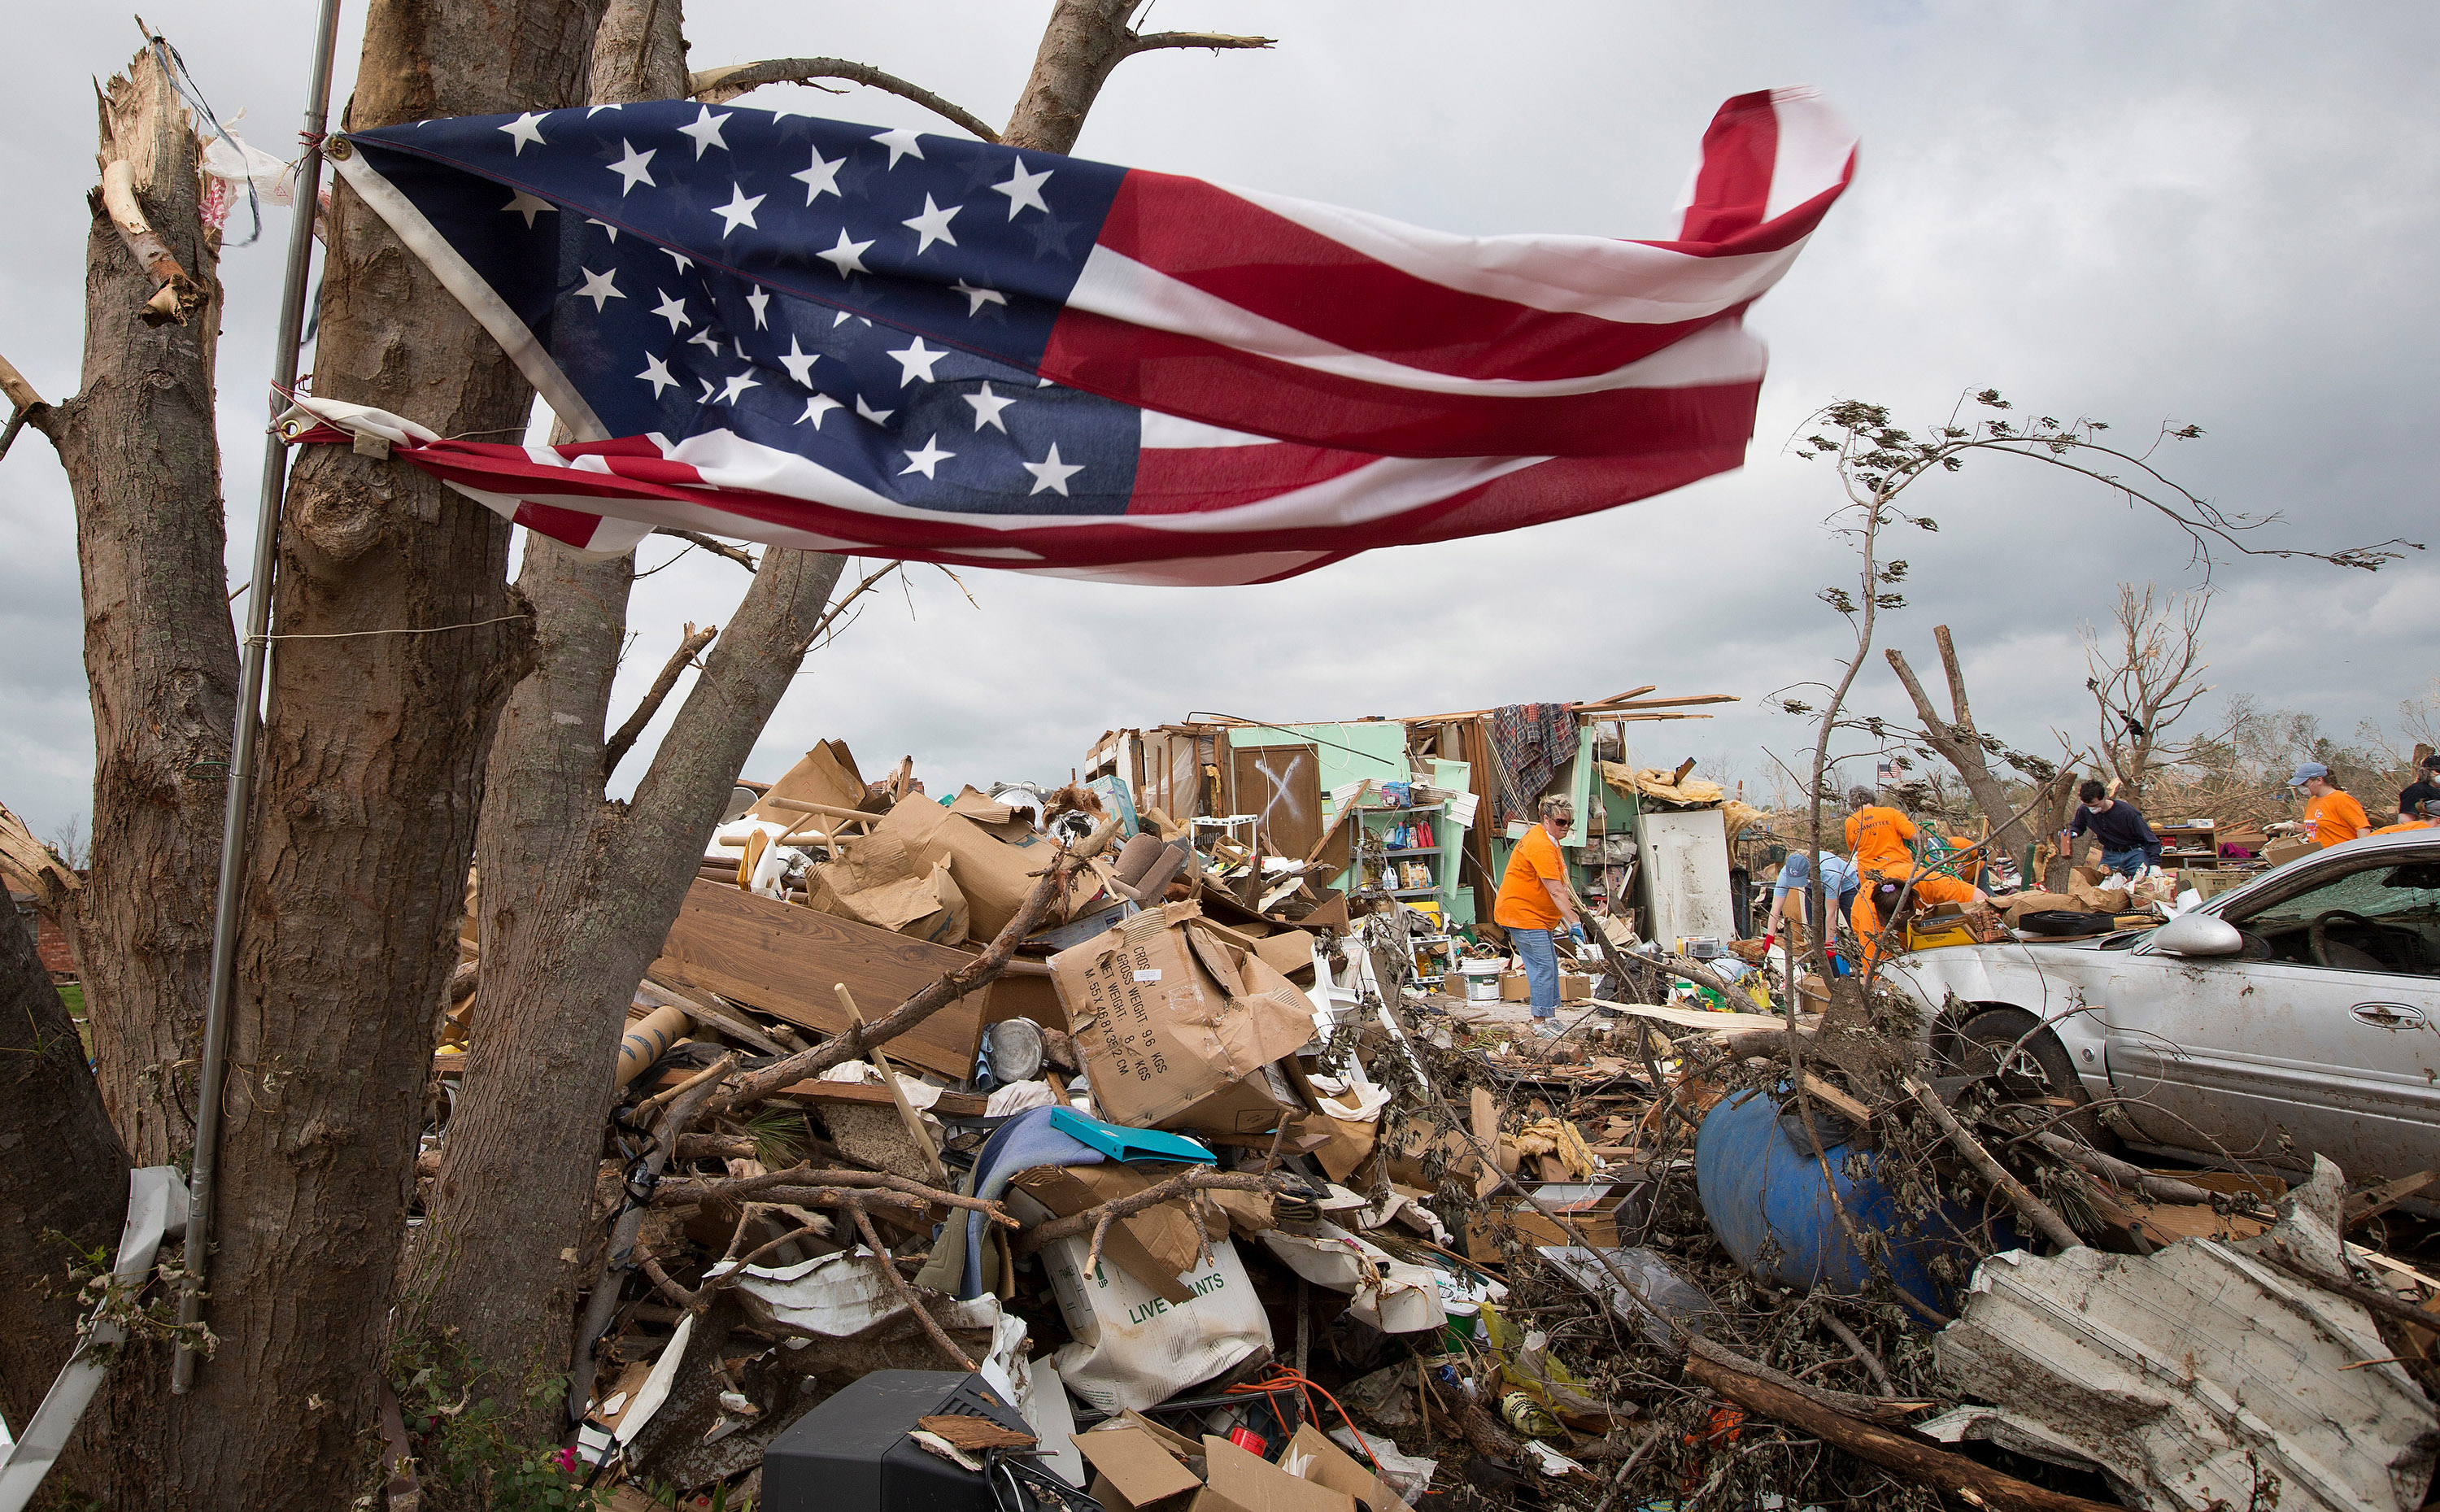 A salvaged U.S. flag flaps in the breeze of a building storm while a volunteer team cleans up tornado damage at a home in Moore, Okla. The team was working out of First United Methodist Church in Moore. Photo by Mike DuBose, UM News.